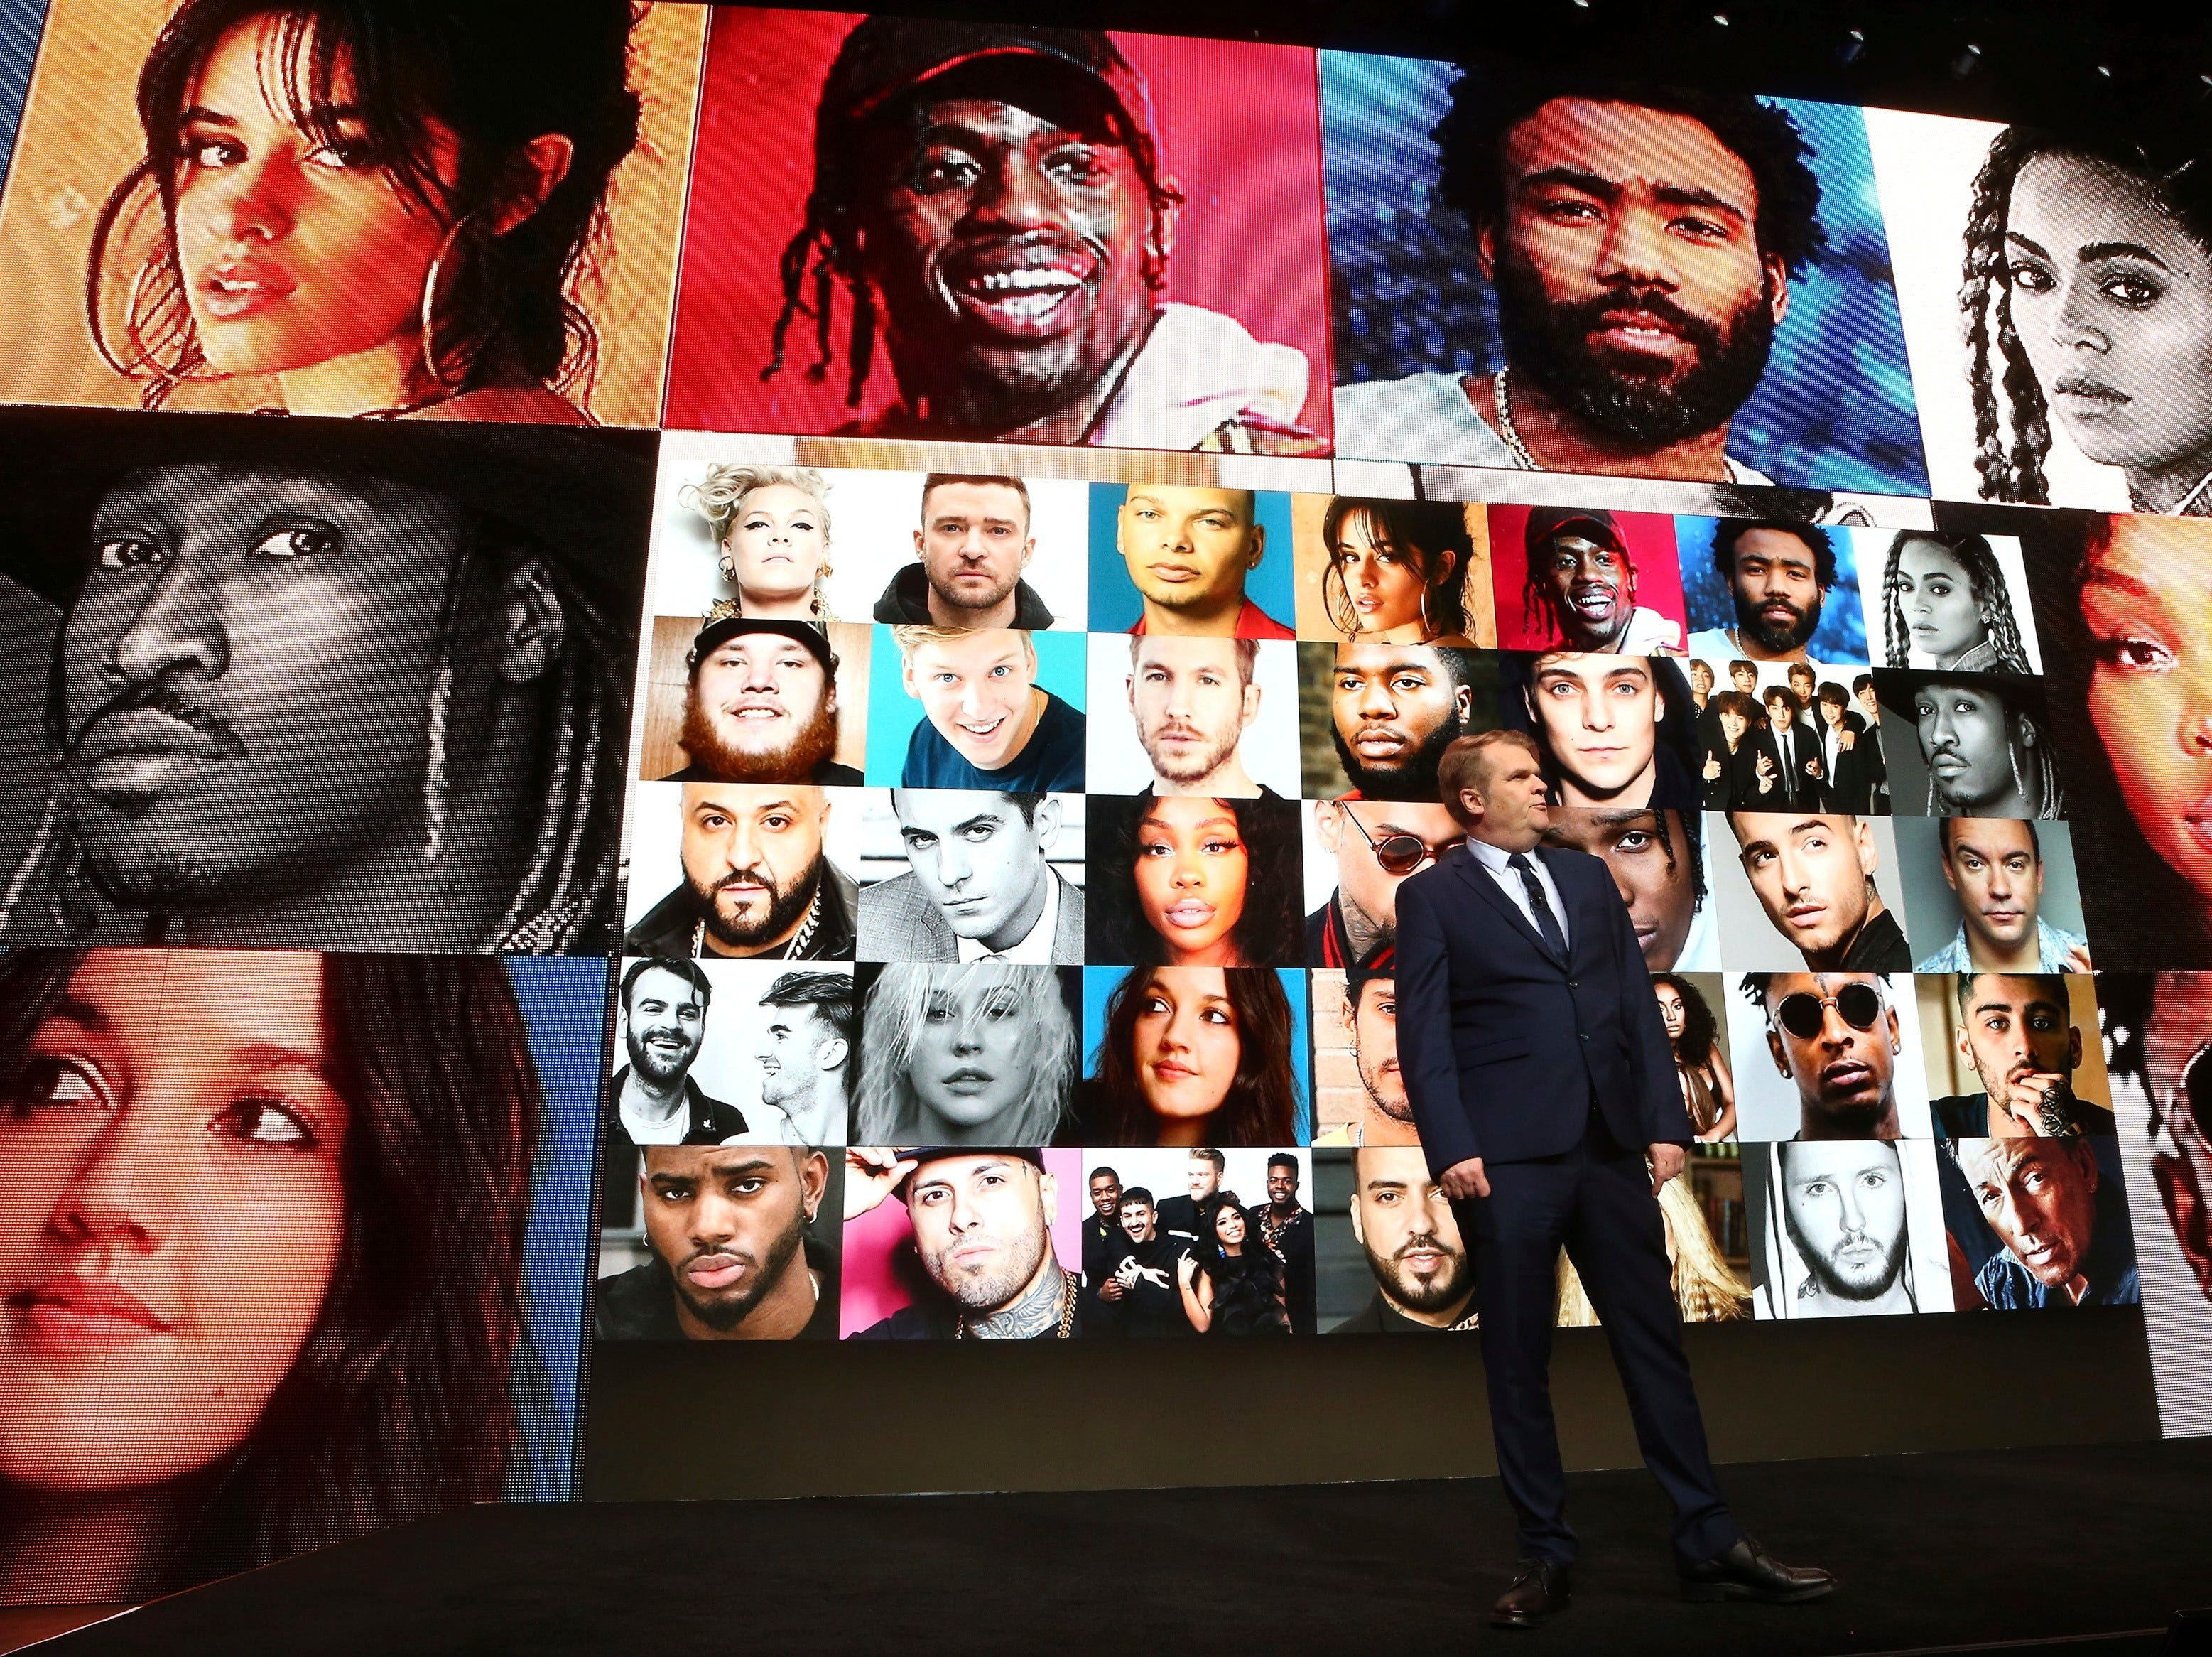 Rob Stringer, CEO of Sony Music Entertainment, speaks at the Sony news conference at CES International on Monday, Jan. 7, 2019, in Las Vegas.